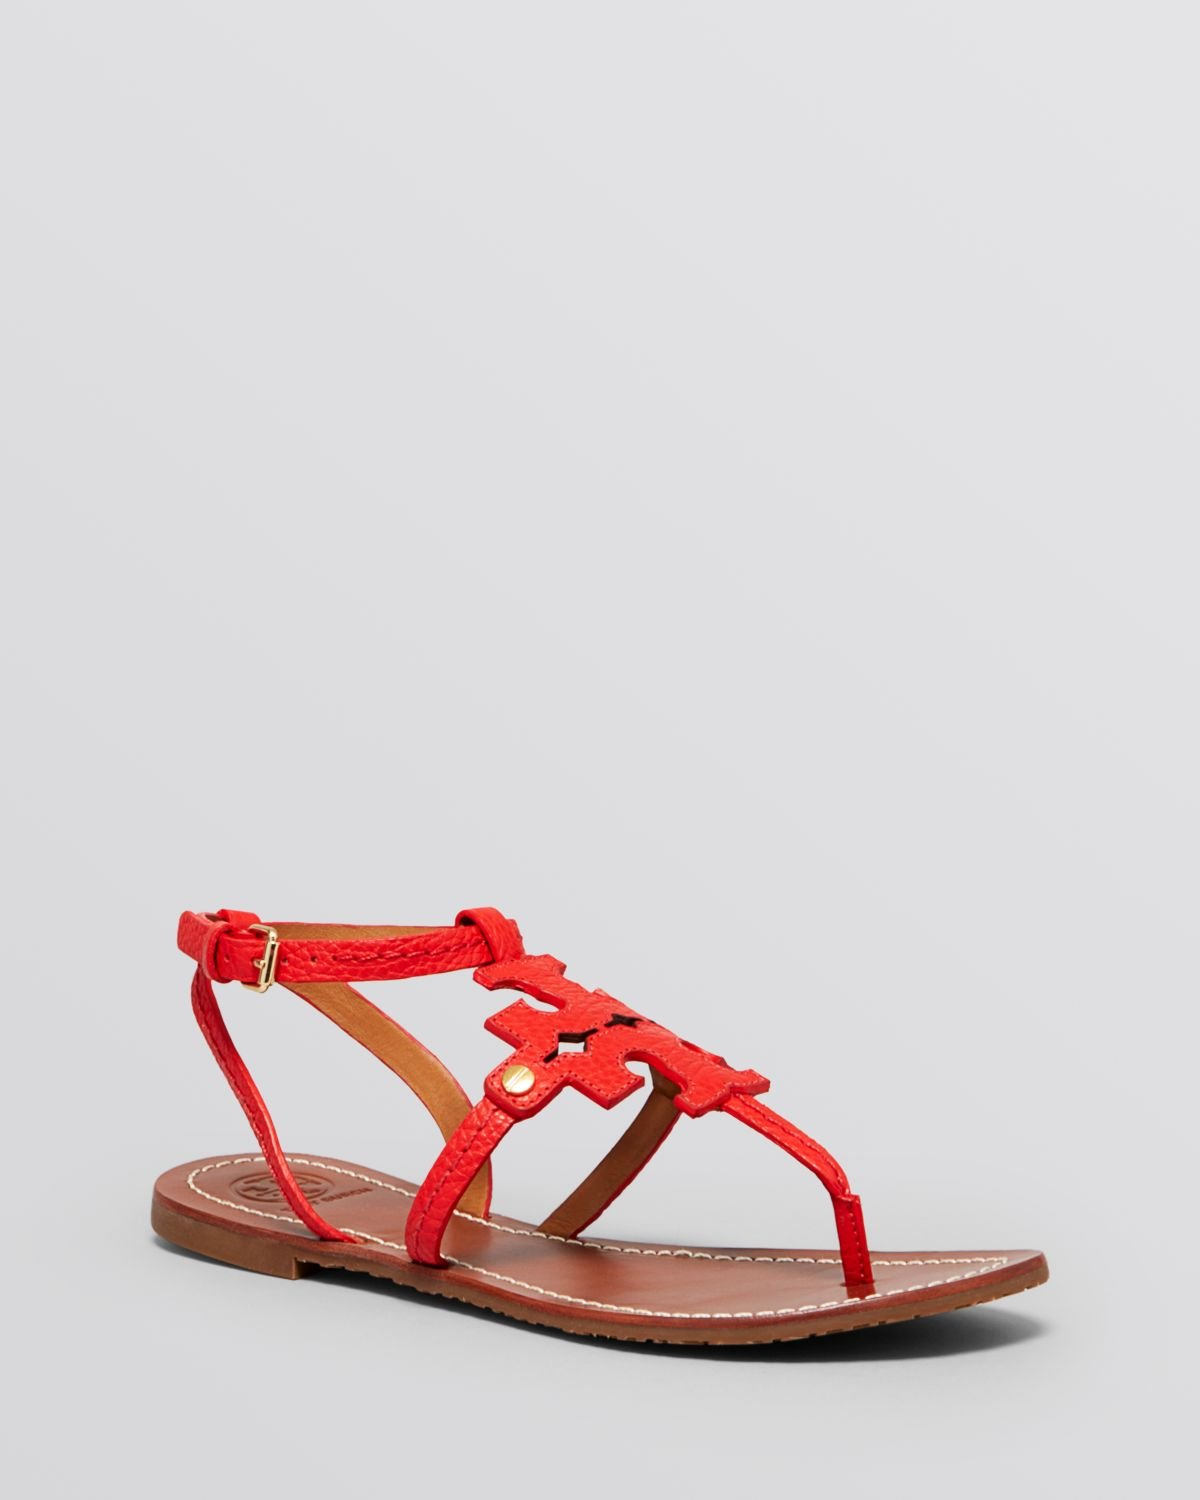 6db5a31c4e2b9 Lyst - Tory Burch Flat Thong Sandals - Chandler Logo in Red